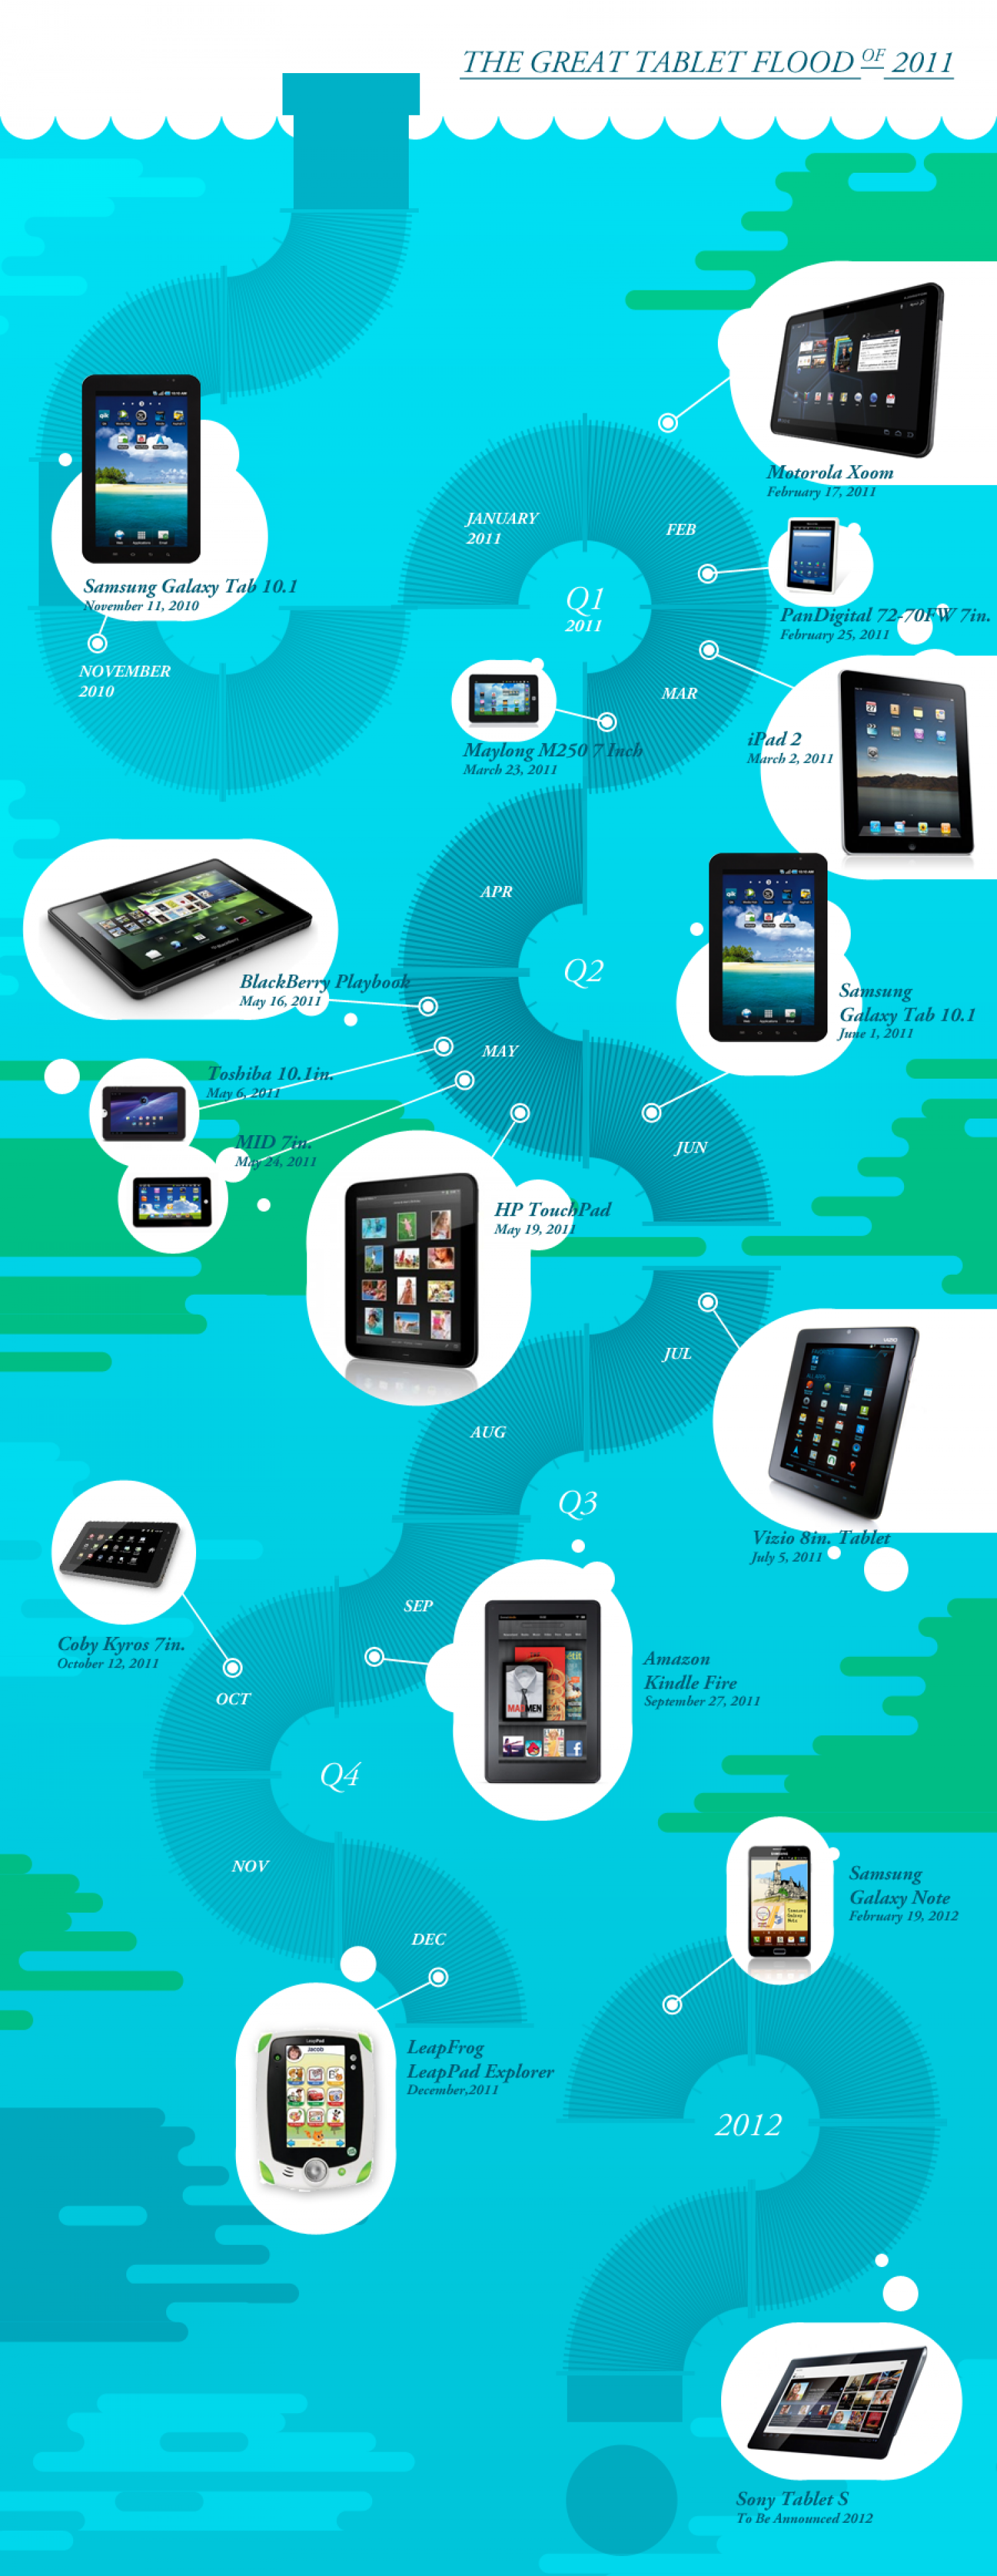 The Great Tablet Flood Infographic